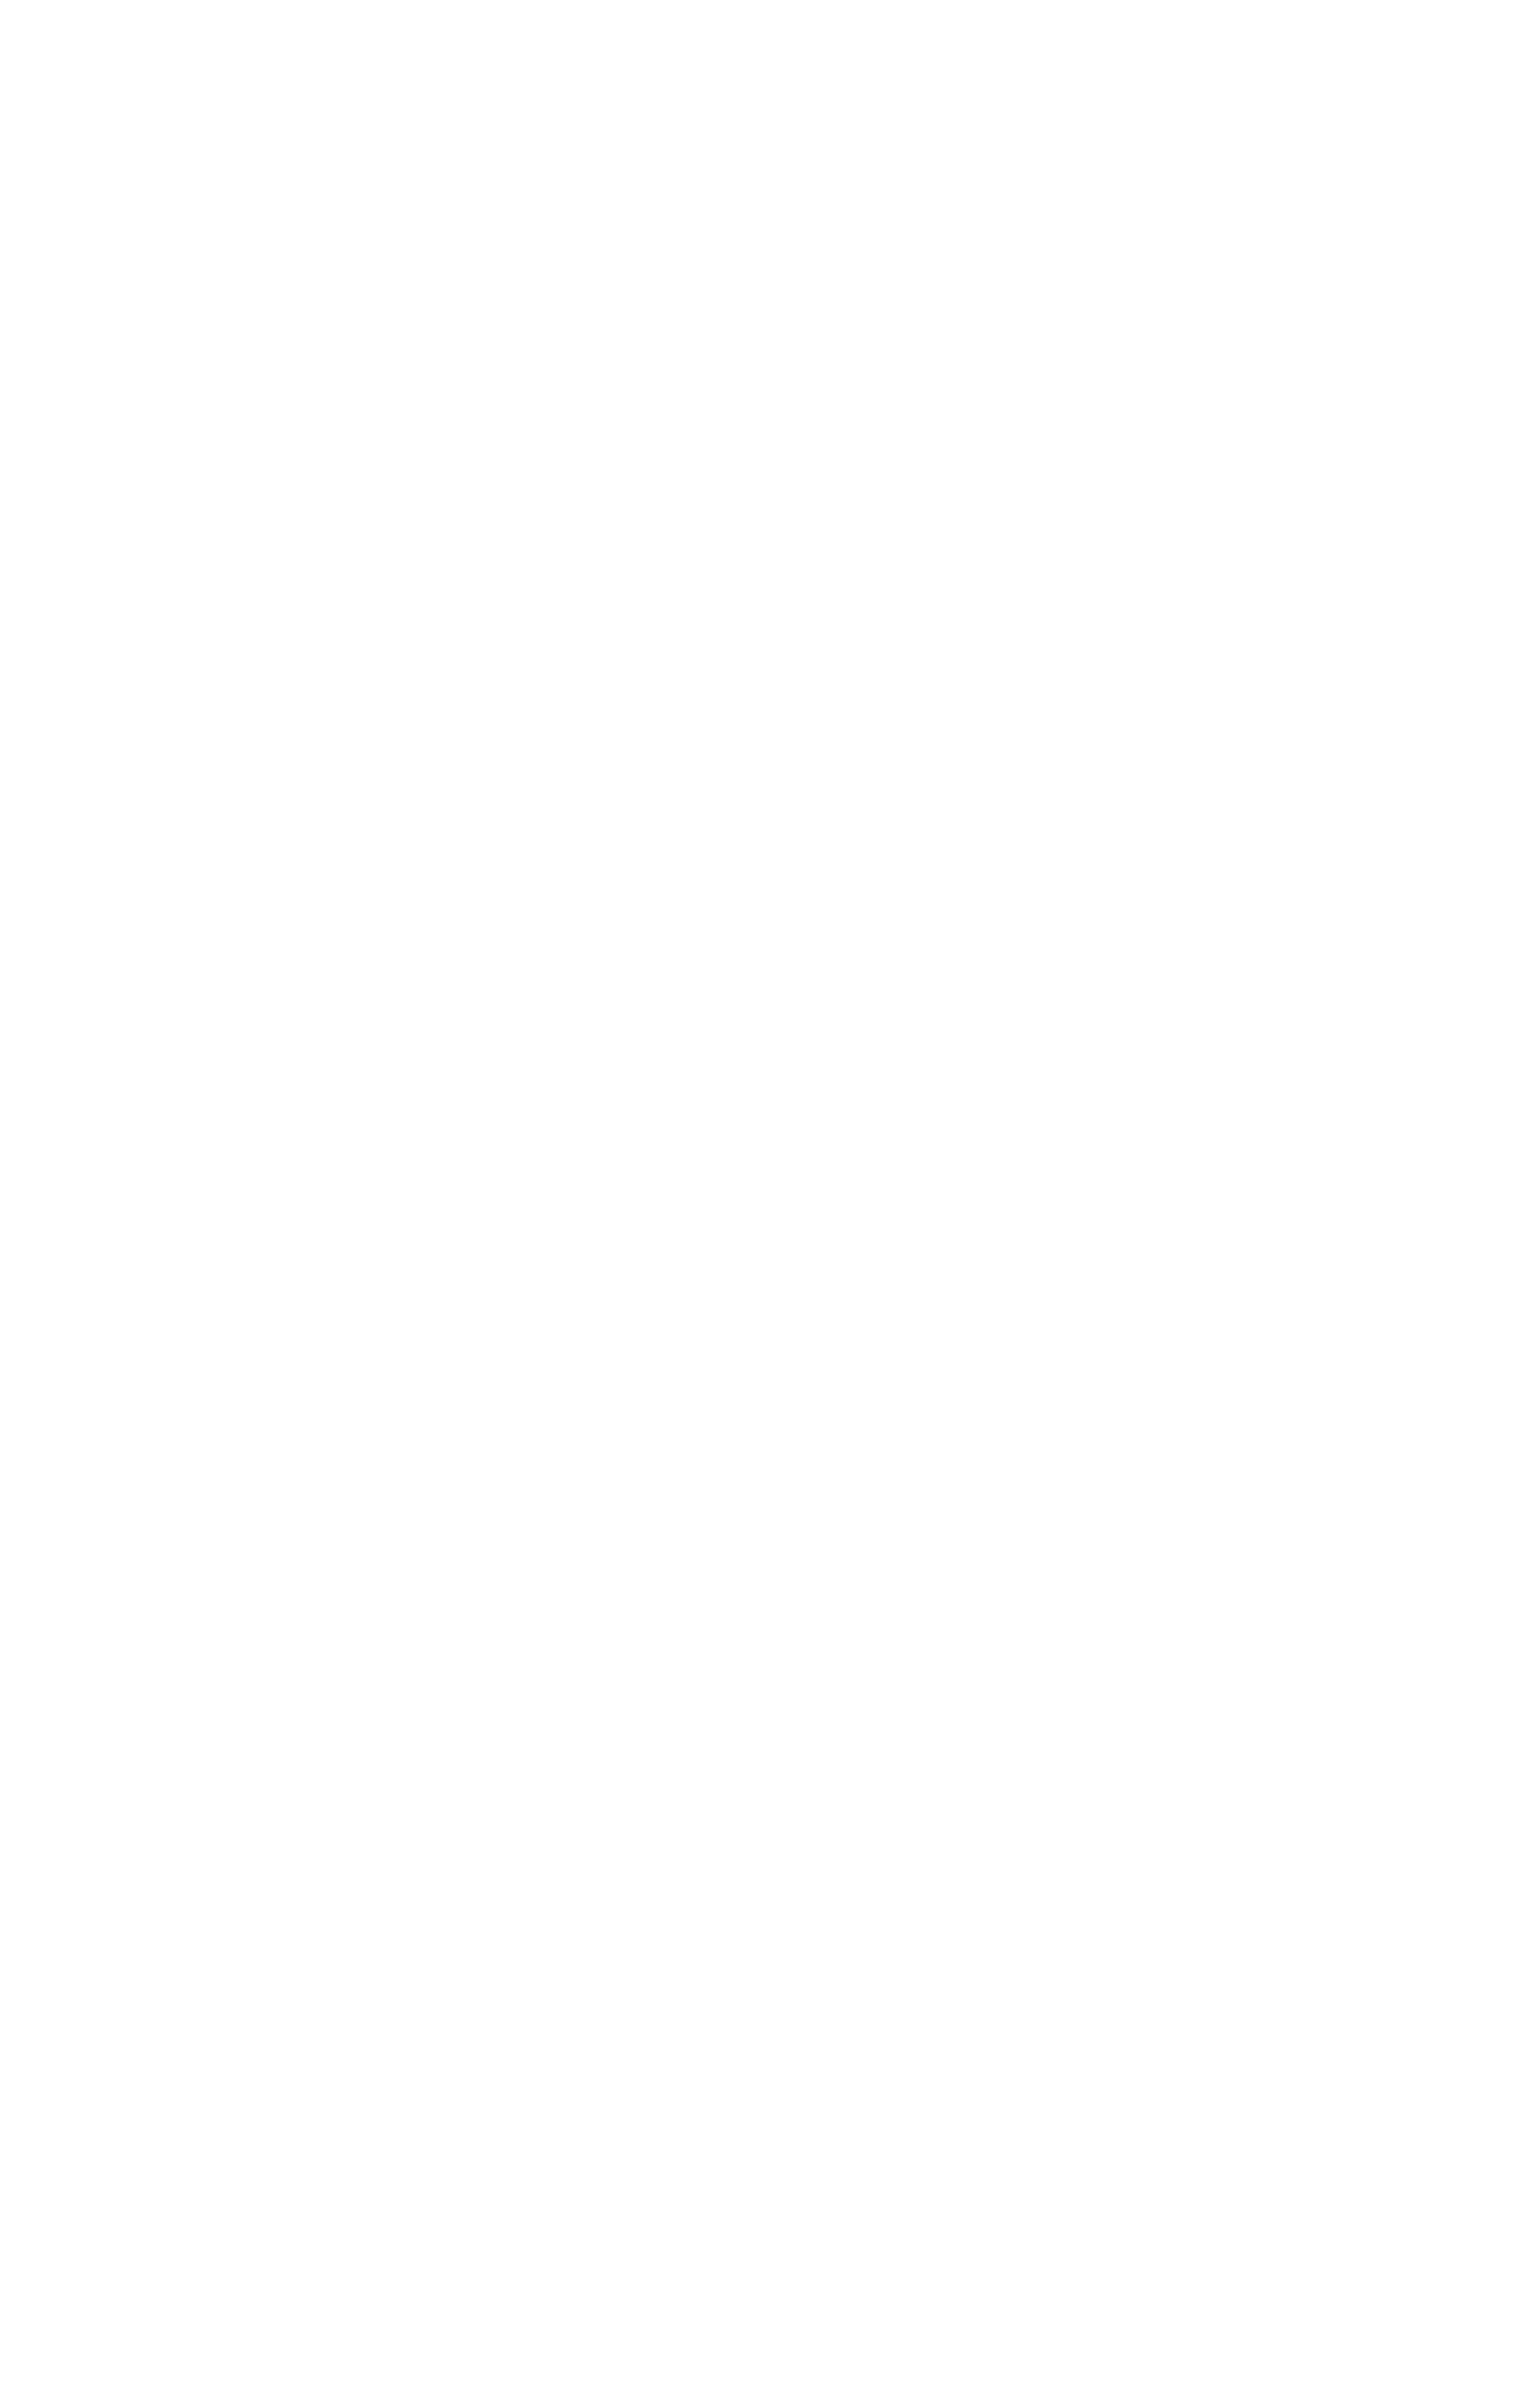 Graphic of a question mark